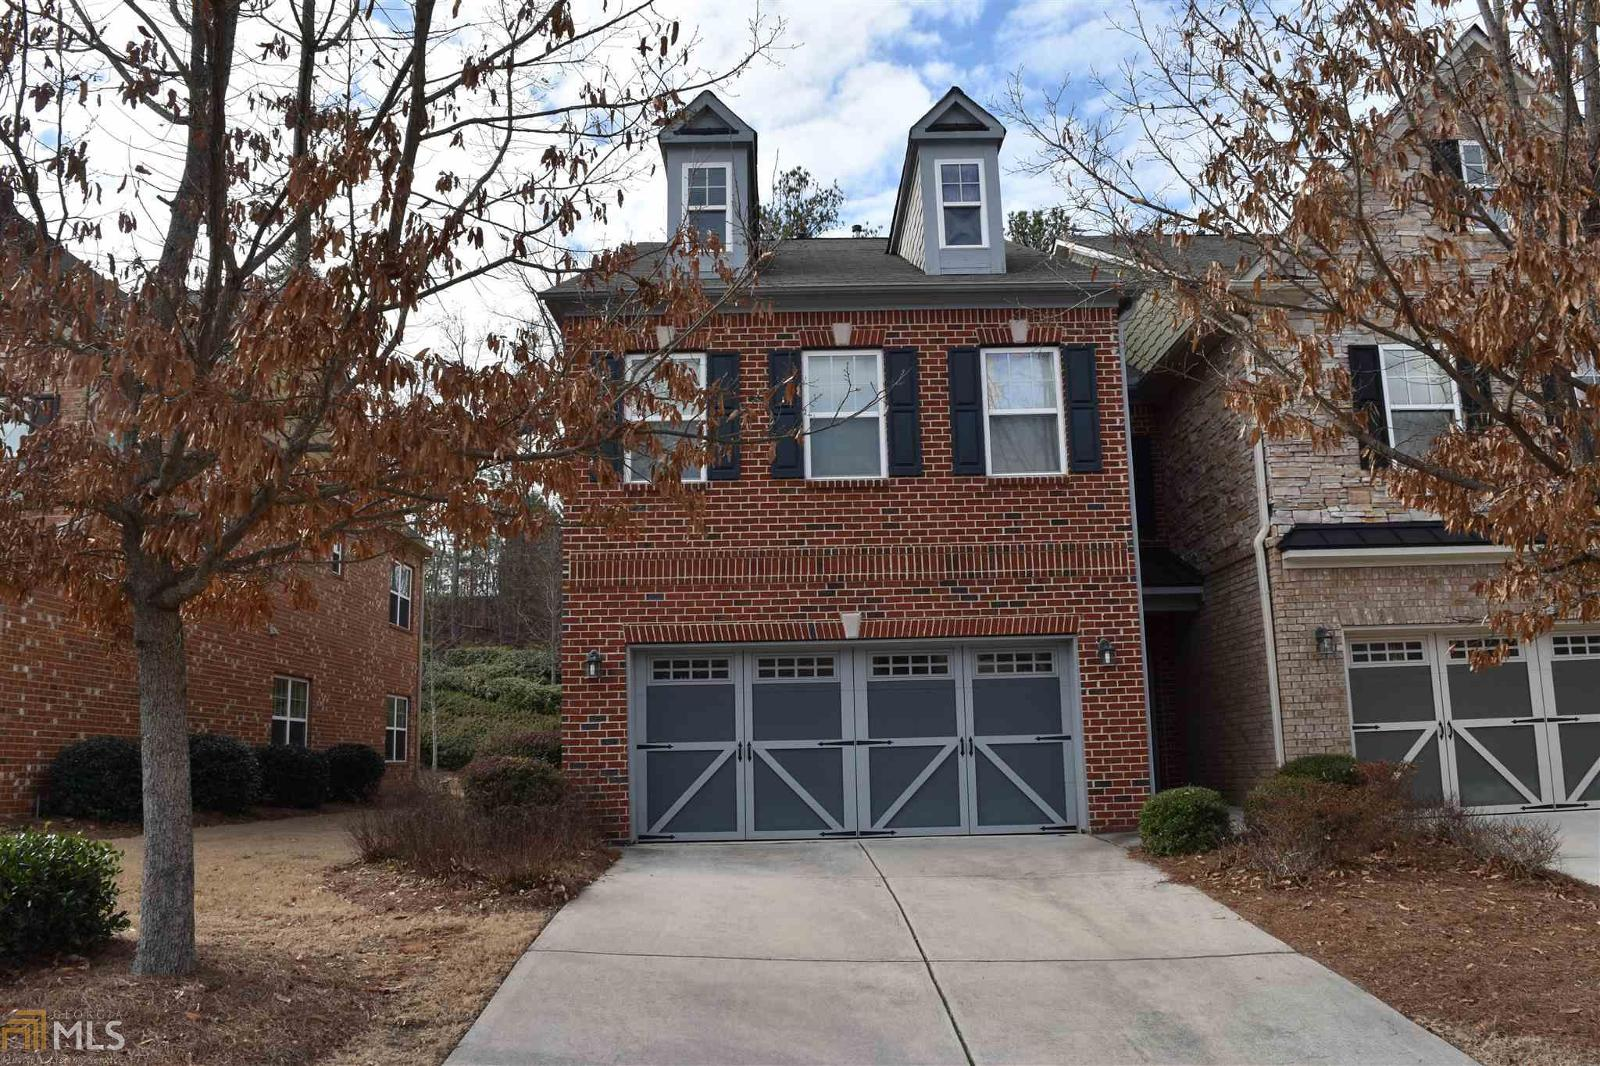 4860 hastings ter alpharetta ga mls 08118966 ziprealty for 4710 hastings terrace alpharetta ga